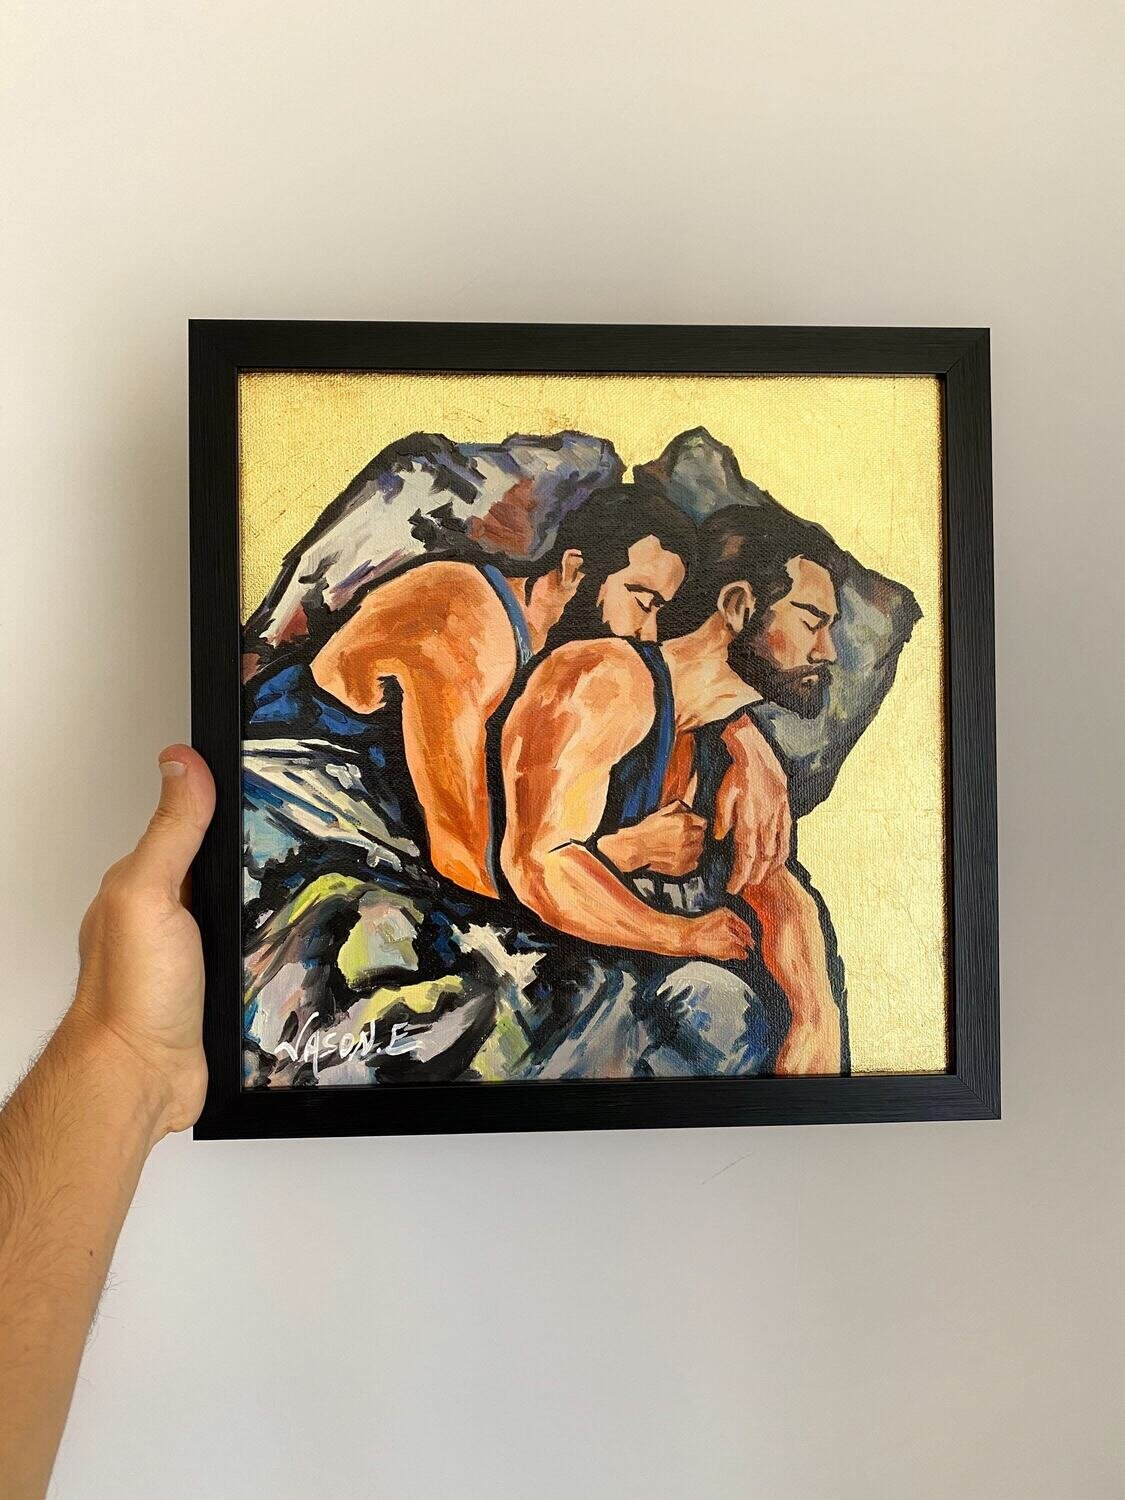 Gay Homosexual Couple Oil Painting Titled LOVERS' SIESTA. Ready to hang. Gay Pride LGBTQ. Couples Art. Oil painting on canvas with Gold Leaf